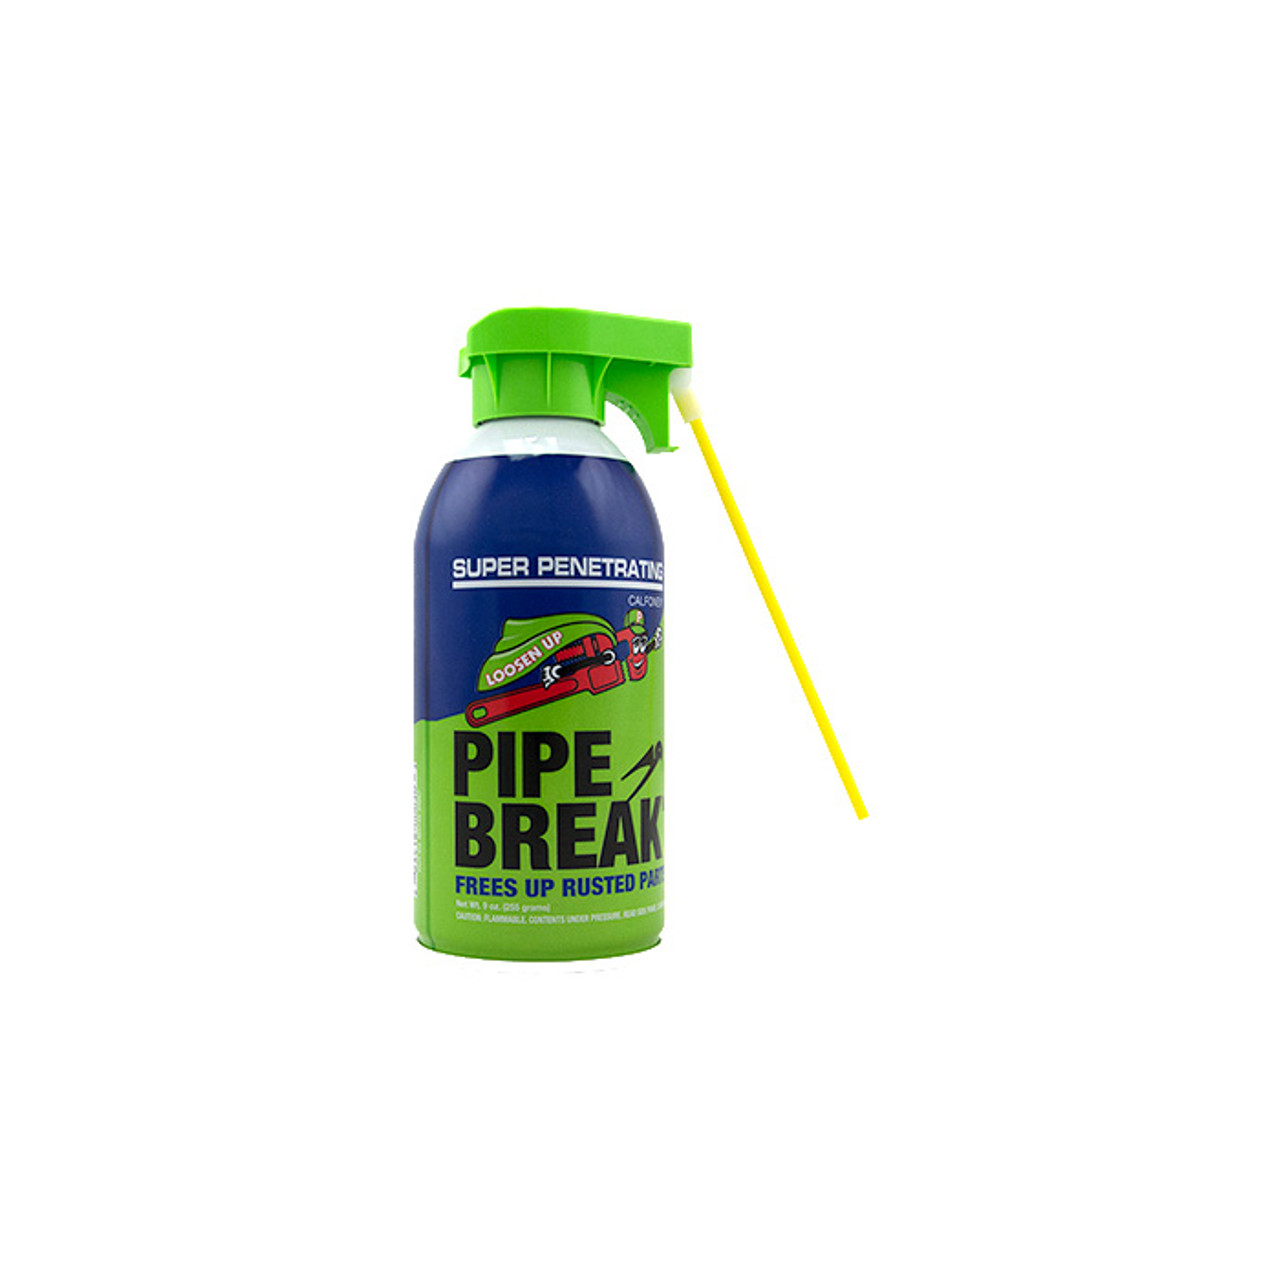 Pipe Break - 9 oz. Cans Case of 12